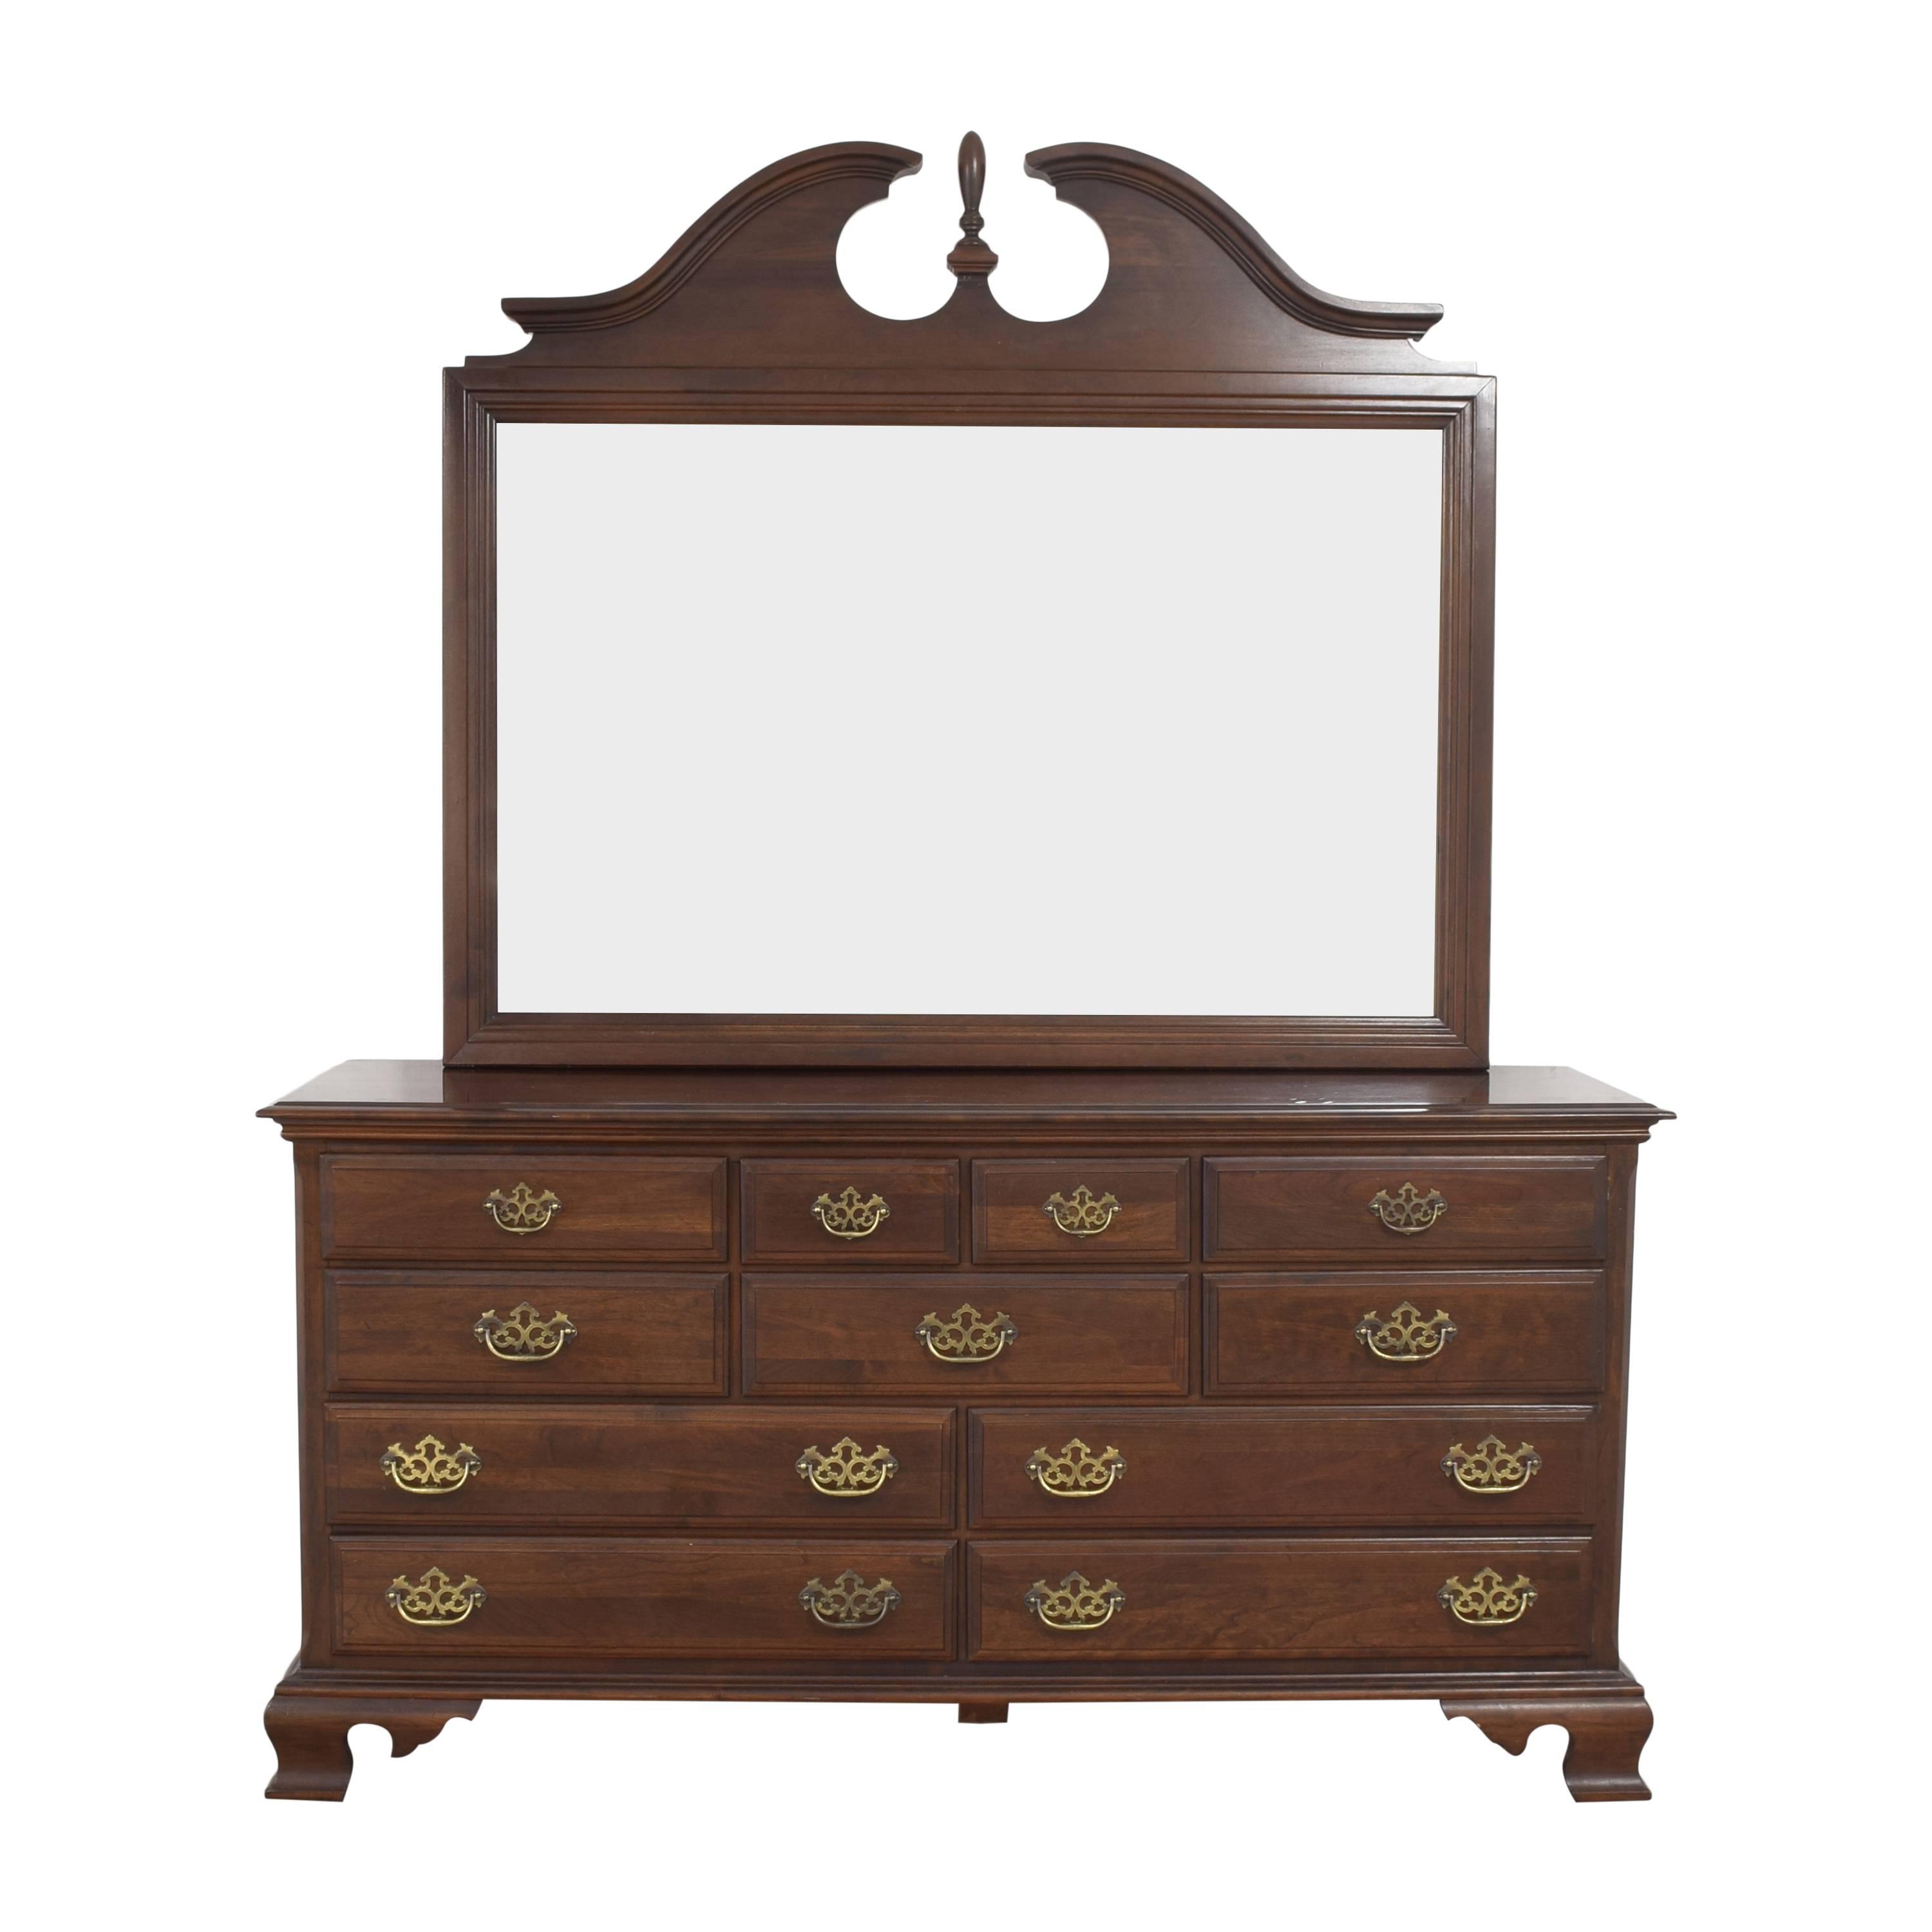 Chippendale-Style Dresser with Mirror